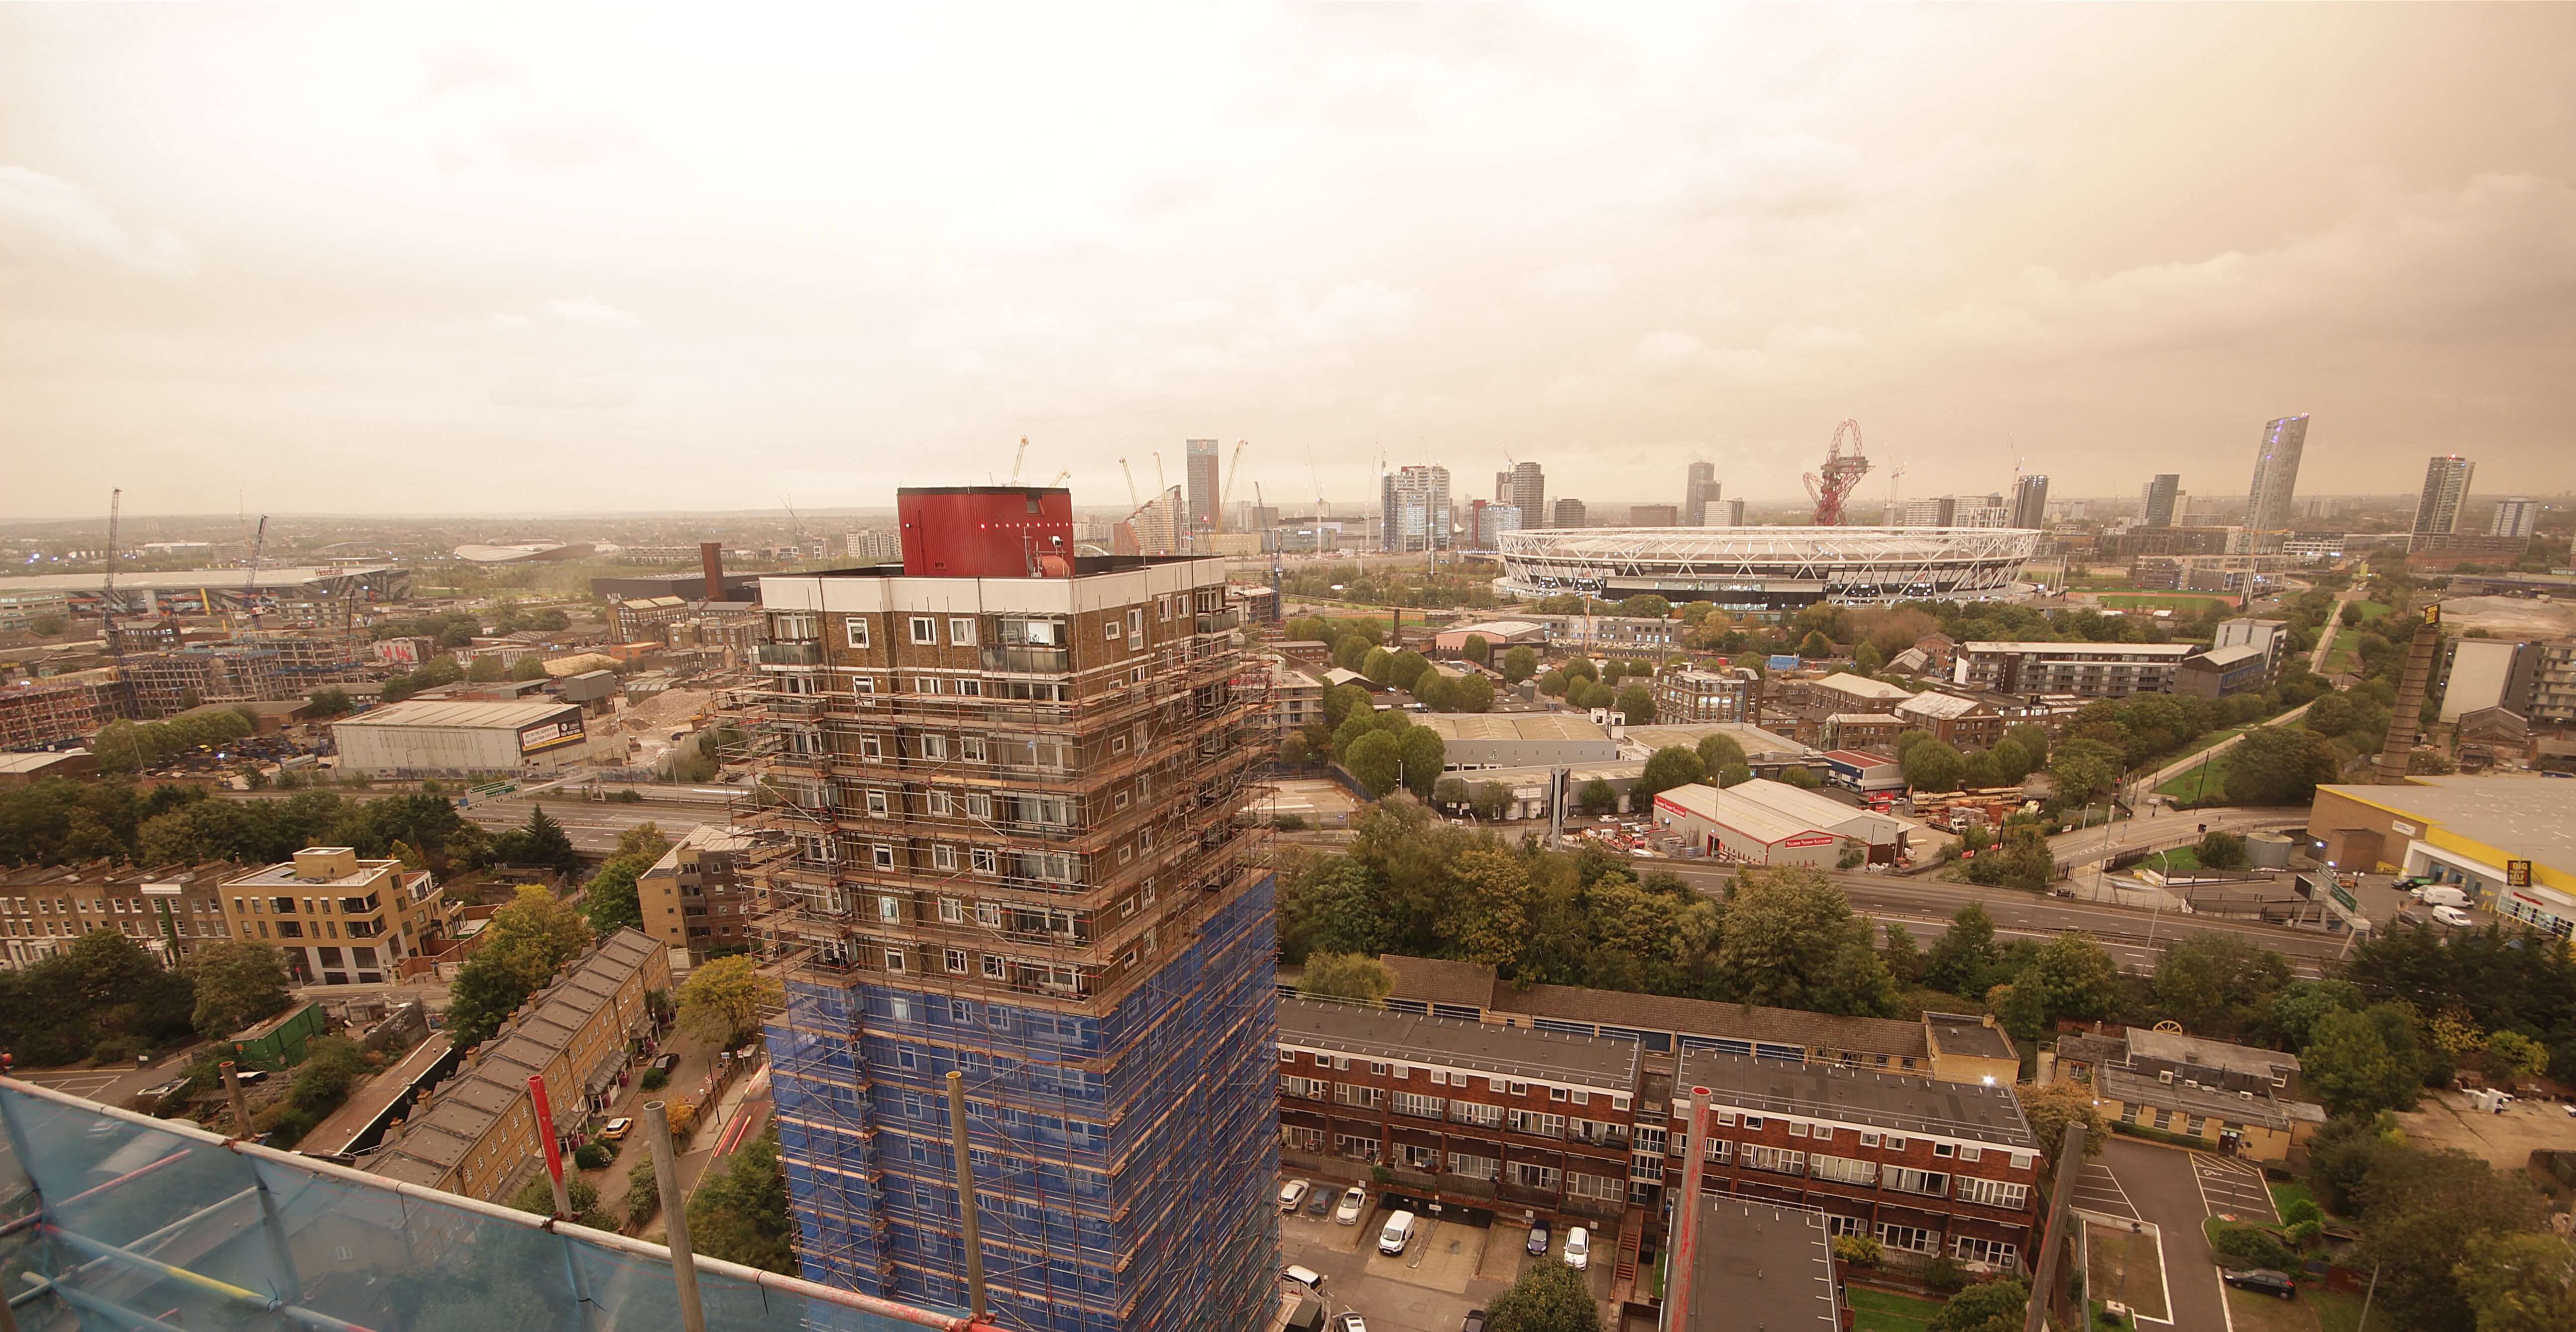 One of our time-lapse construction projects for Kier Services.